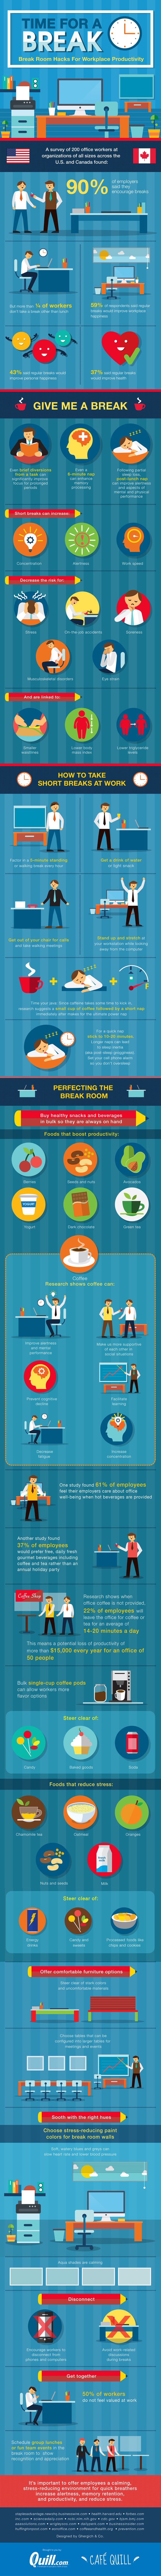 [Infographic] Break Room Hacks For Workplace Productivity